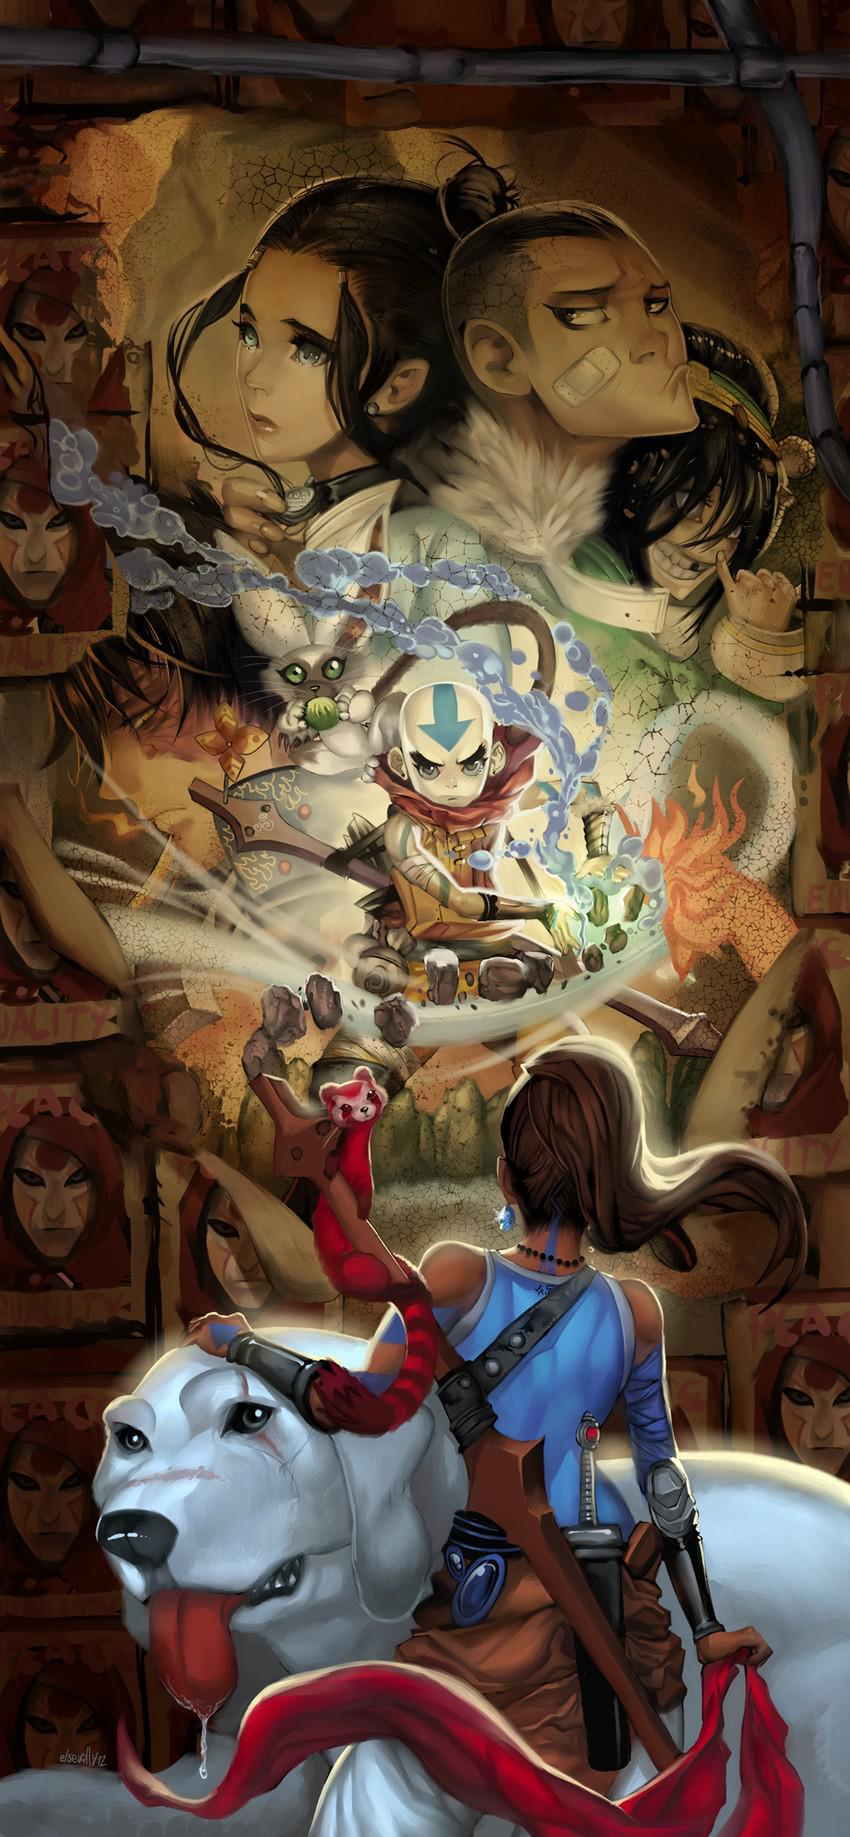 11 Changes The Legend Of Korra Makes To The Avatar: The